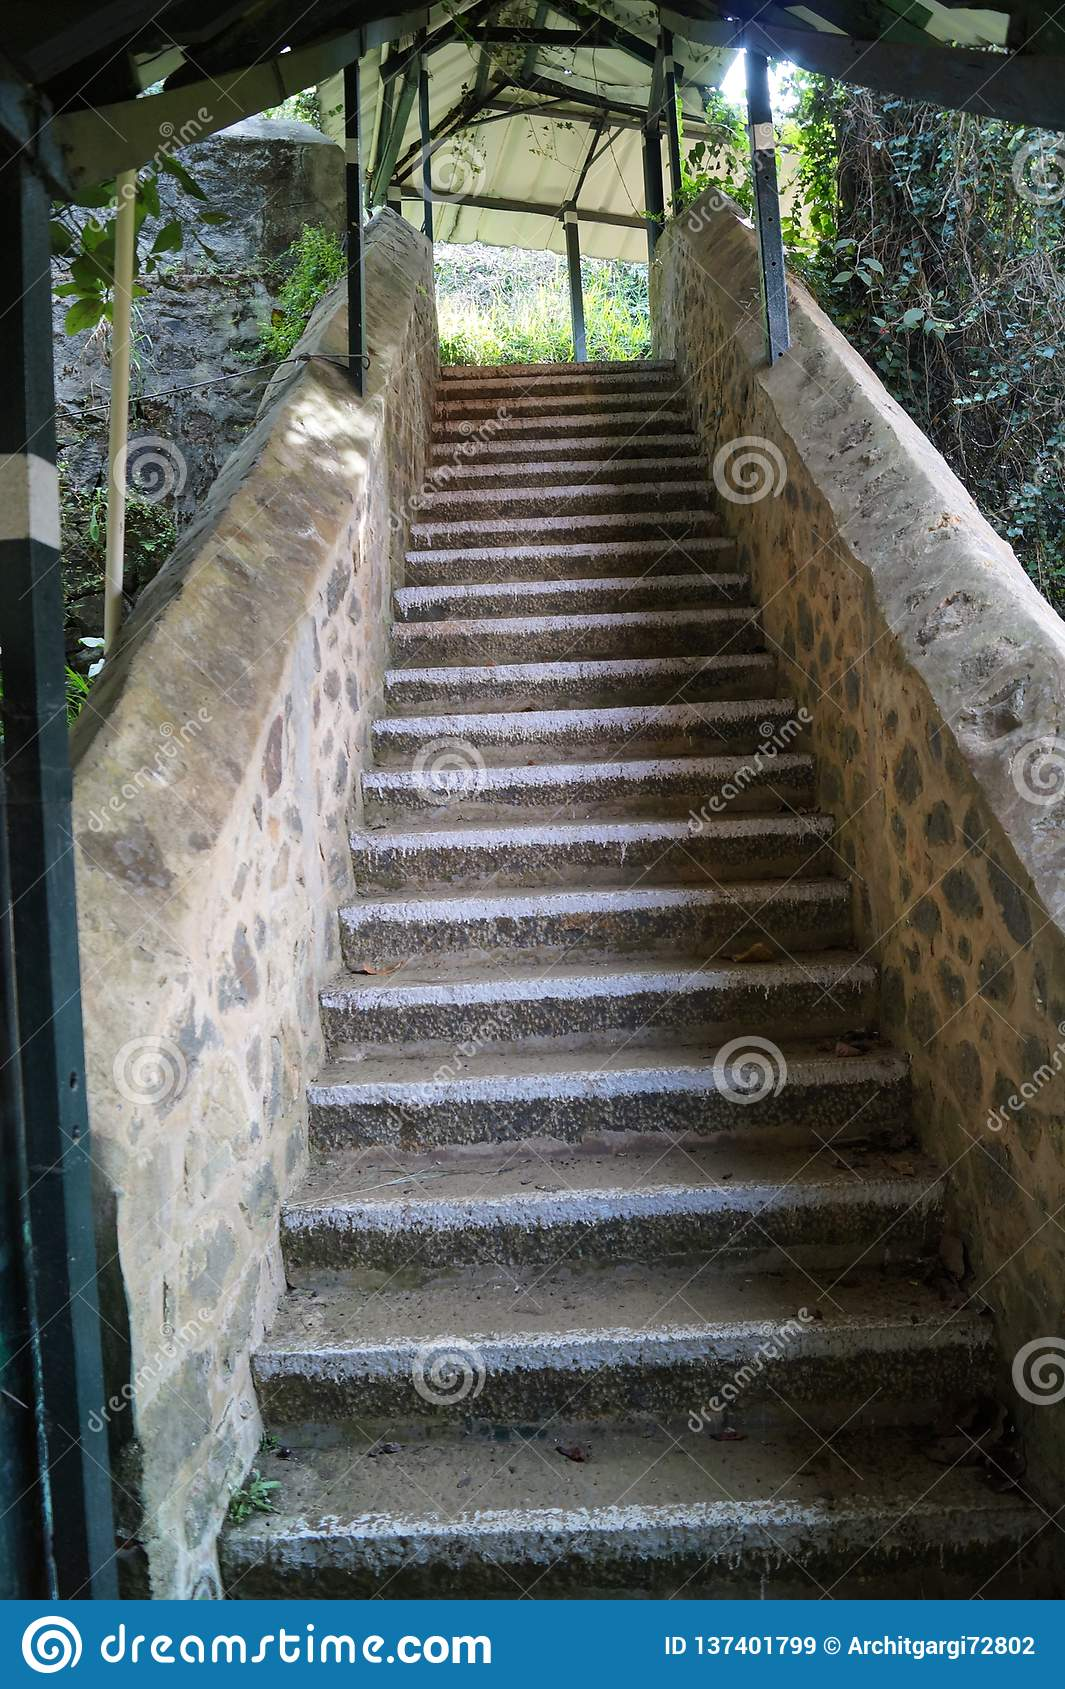 Stairway to heaven in Goregaon